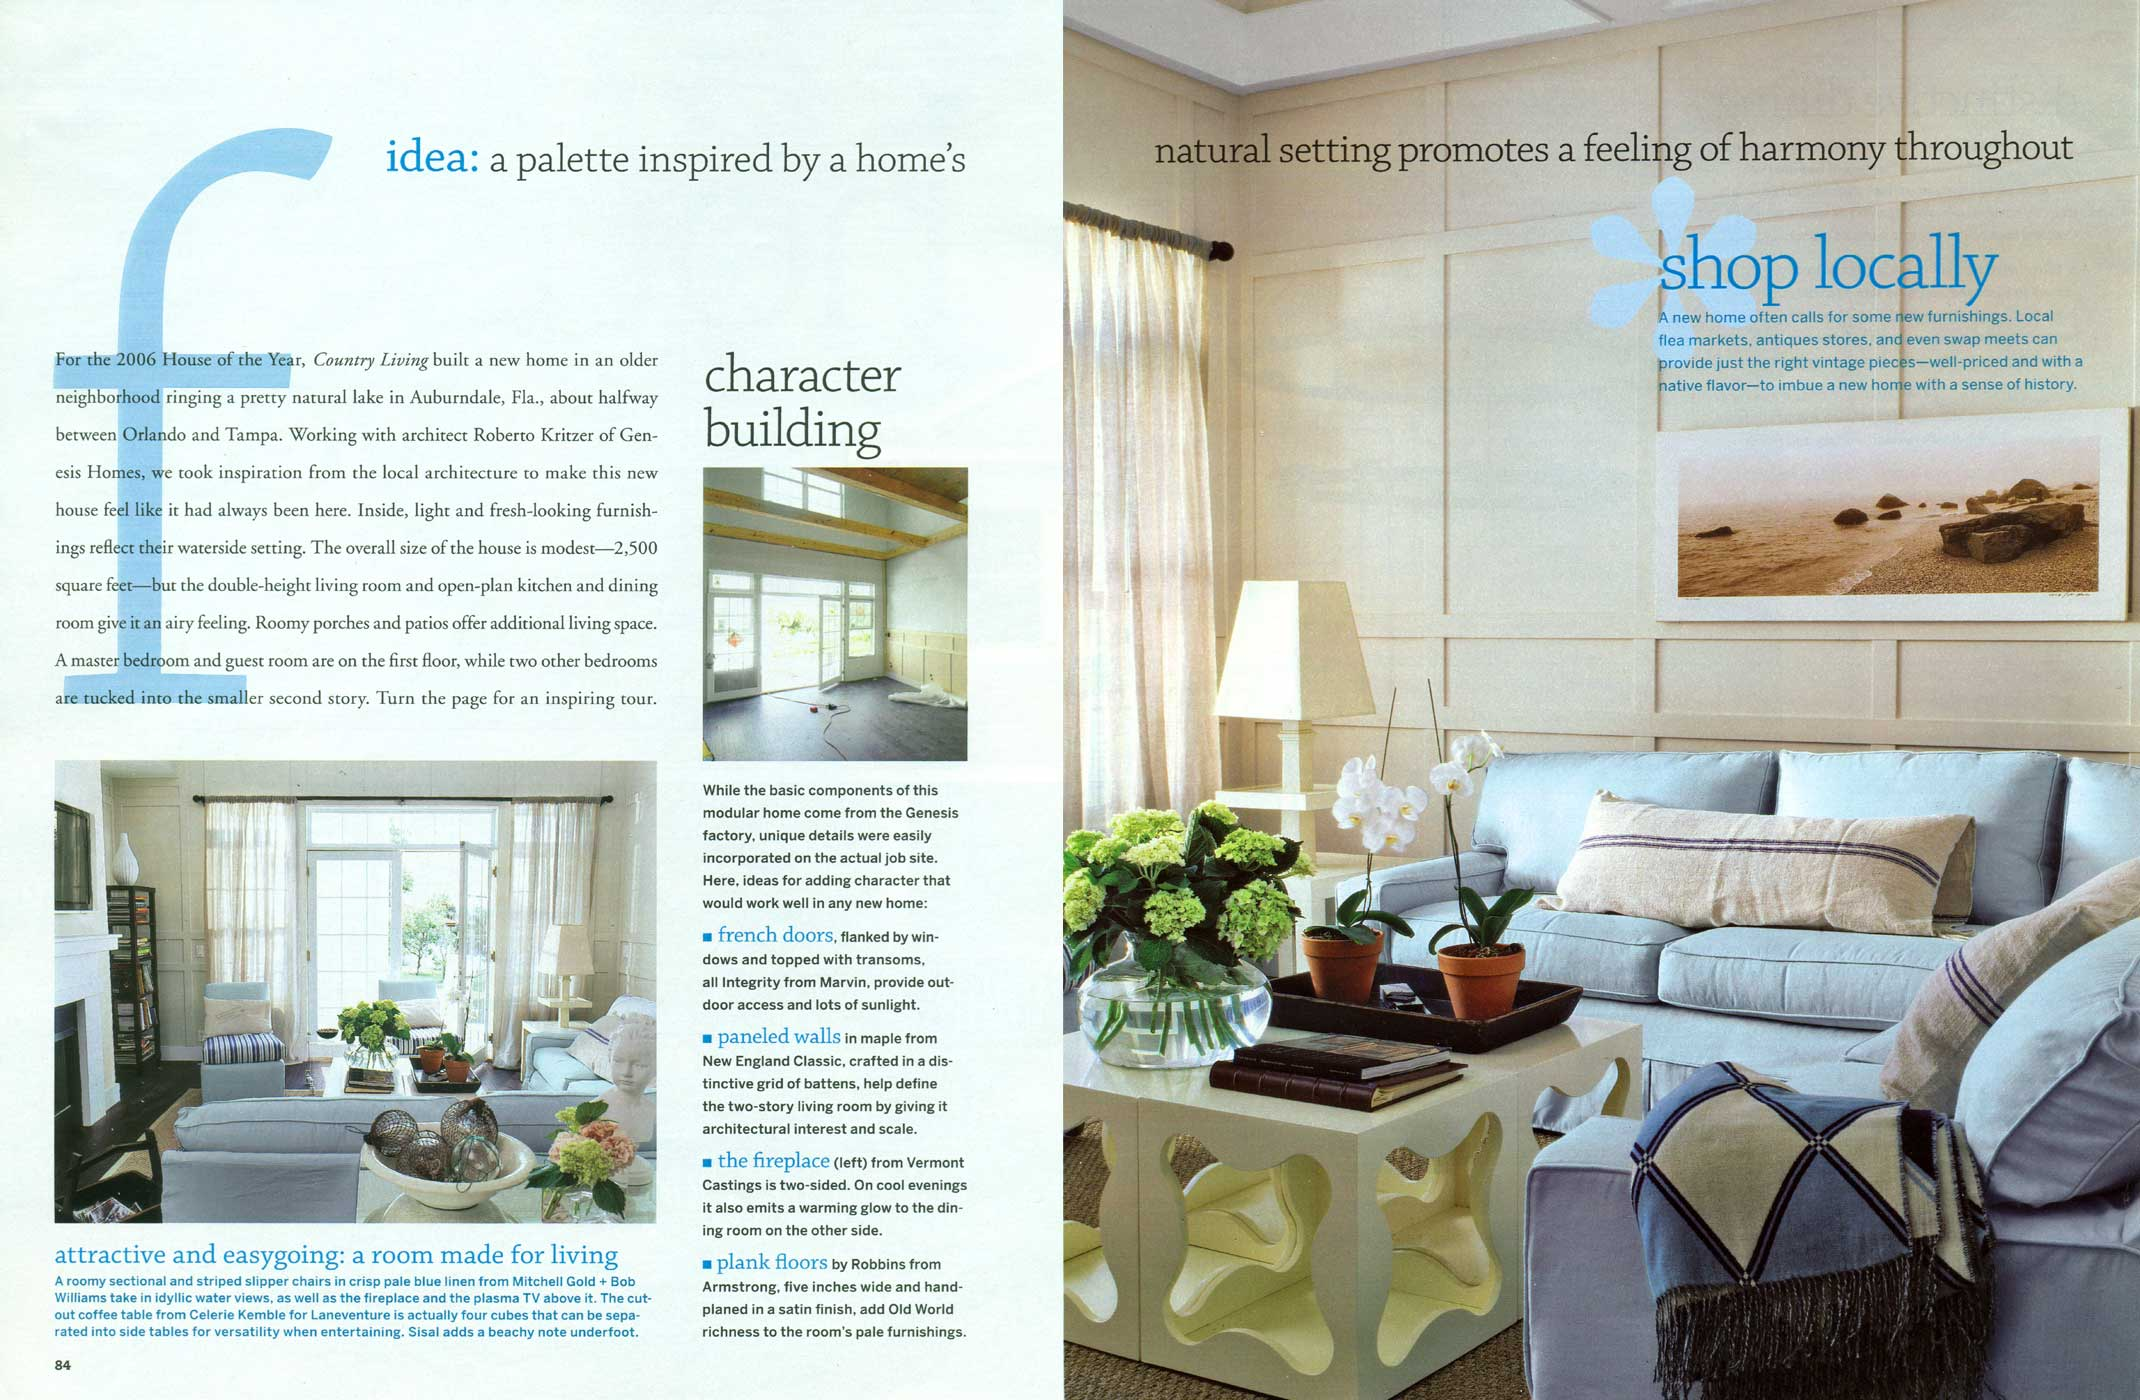 Classic American flat panel wainscoting with custom rails was featured in this issue of Country Living.